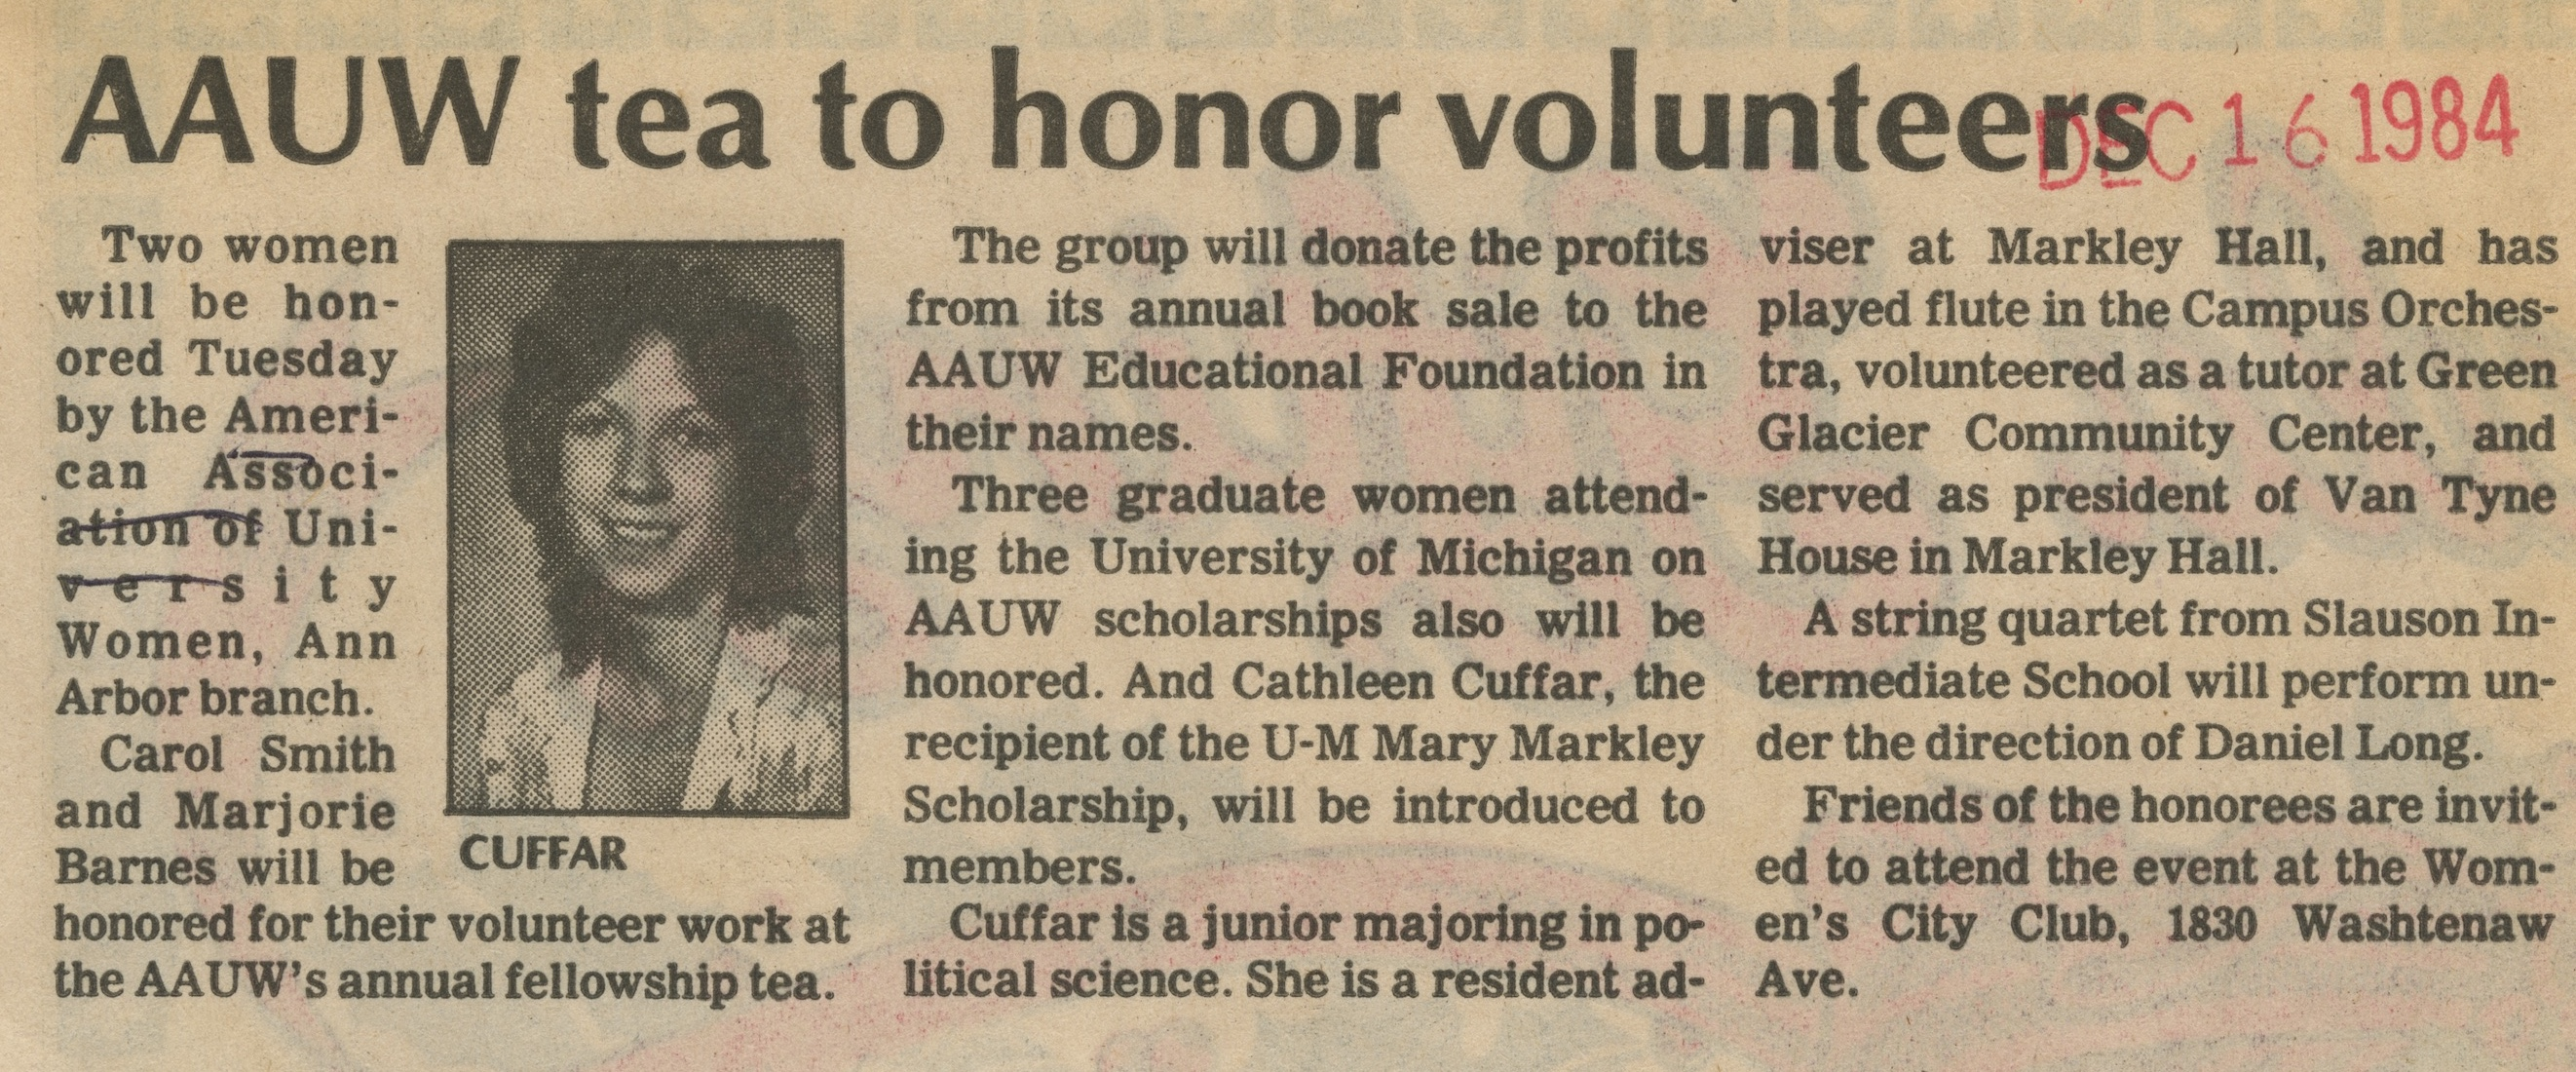 AAUW Tea To Honor Volunteers image